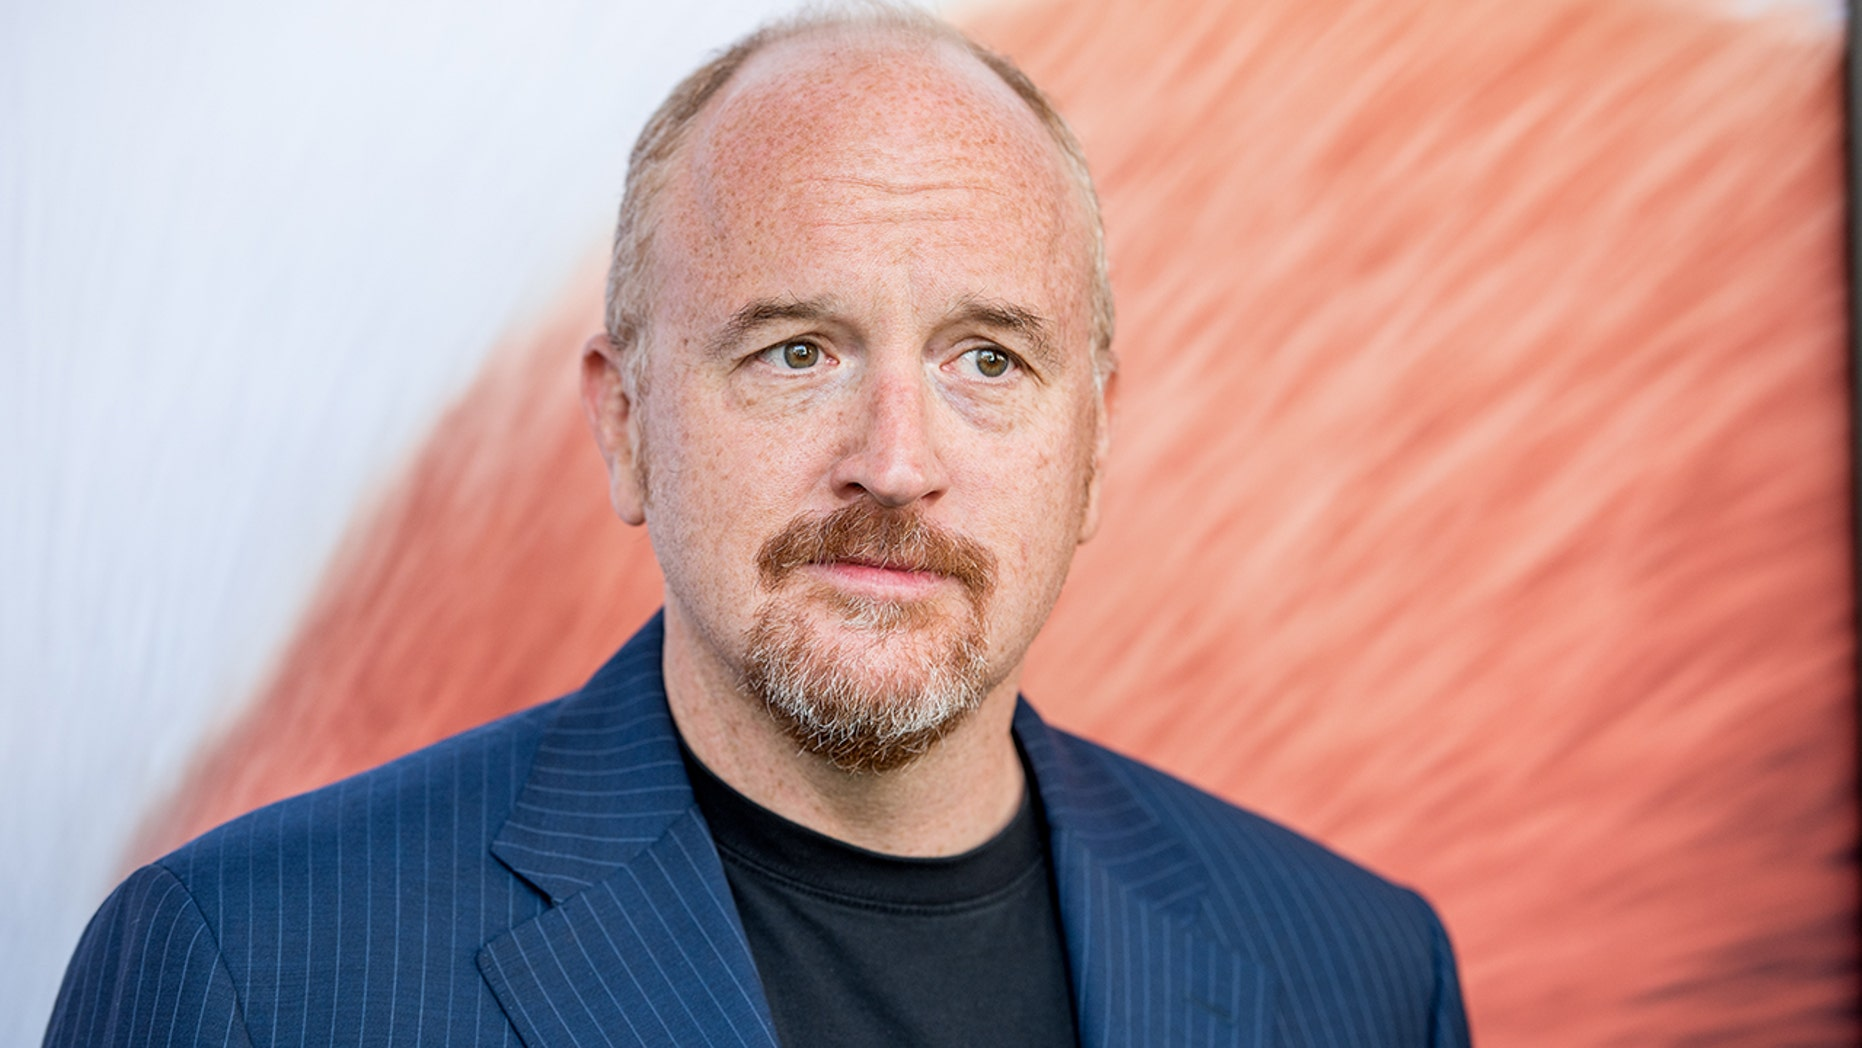 Louis C.K. Ripped for Mocking Parkland Students in Stand-Up